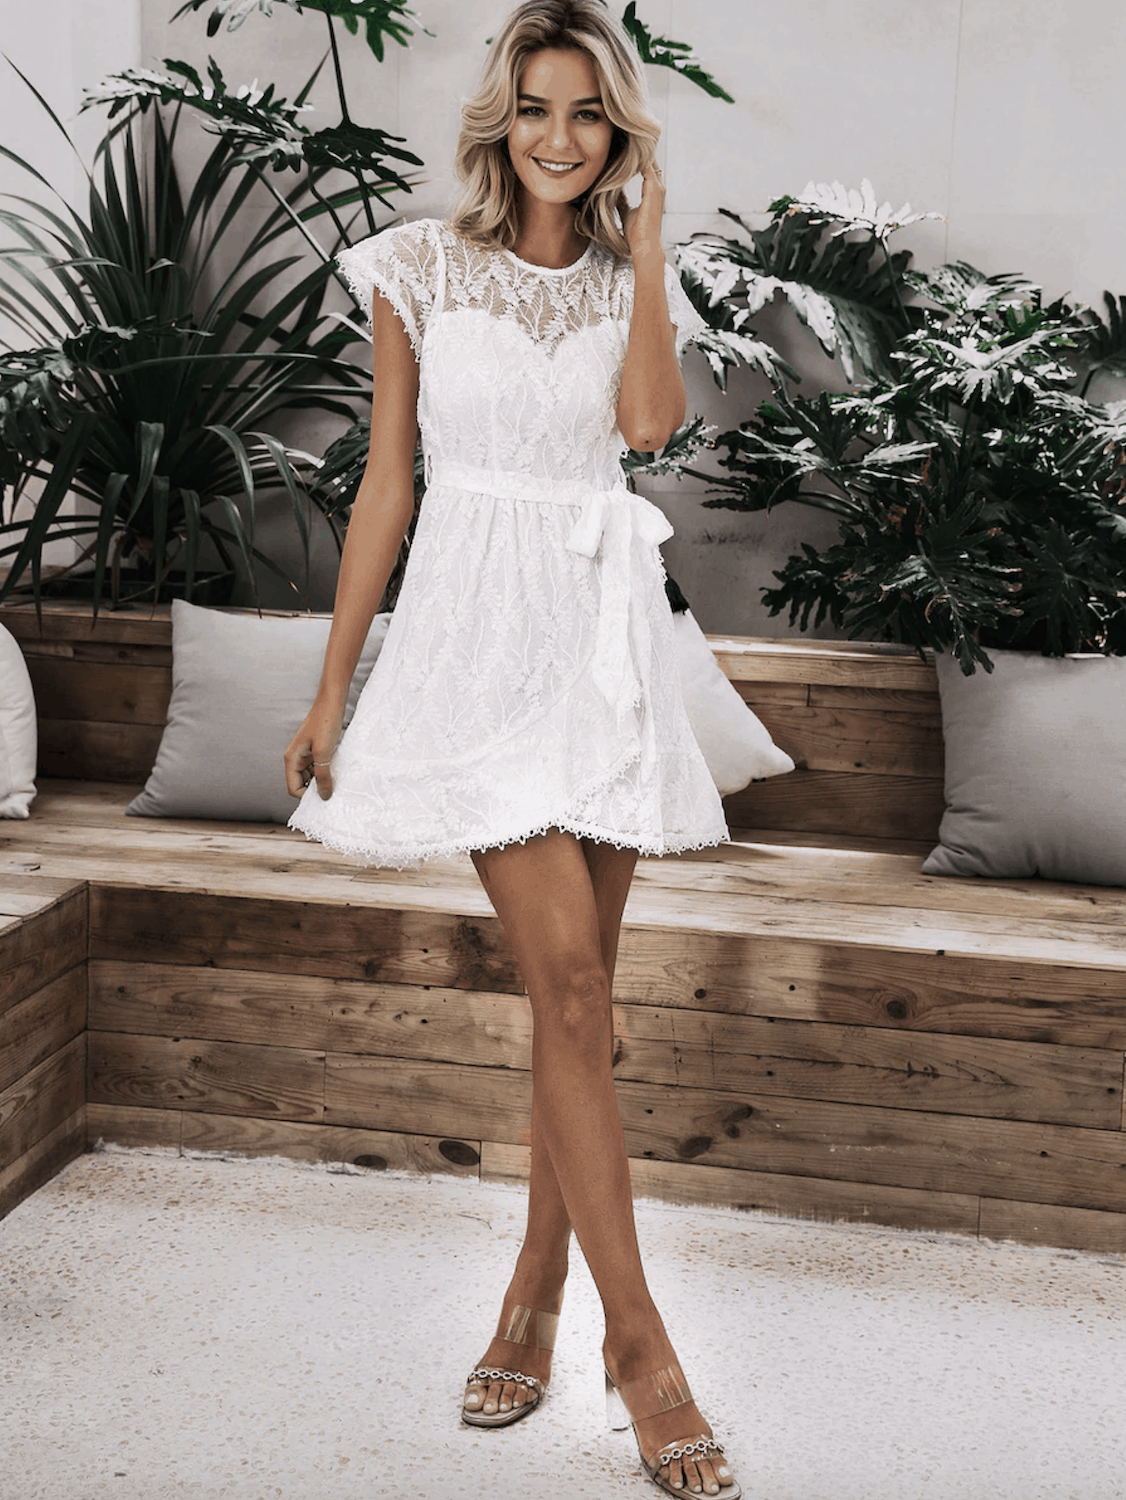 Bridal Shower Dresses for the Bride Simplee Zip Back Ruffle Hem Wrap Belted Lace Dress 3